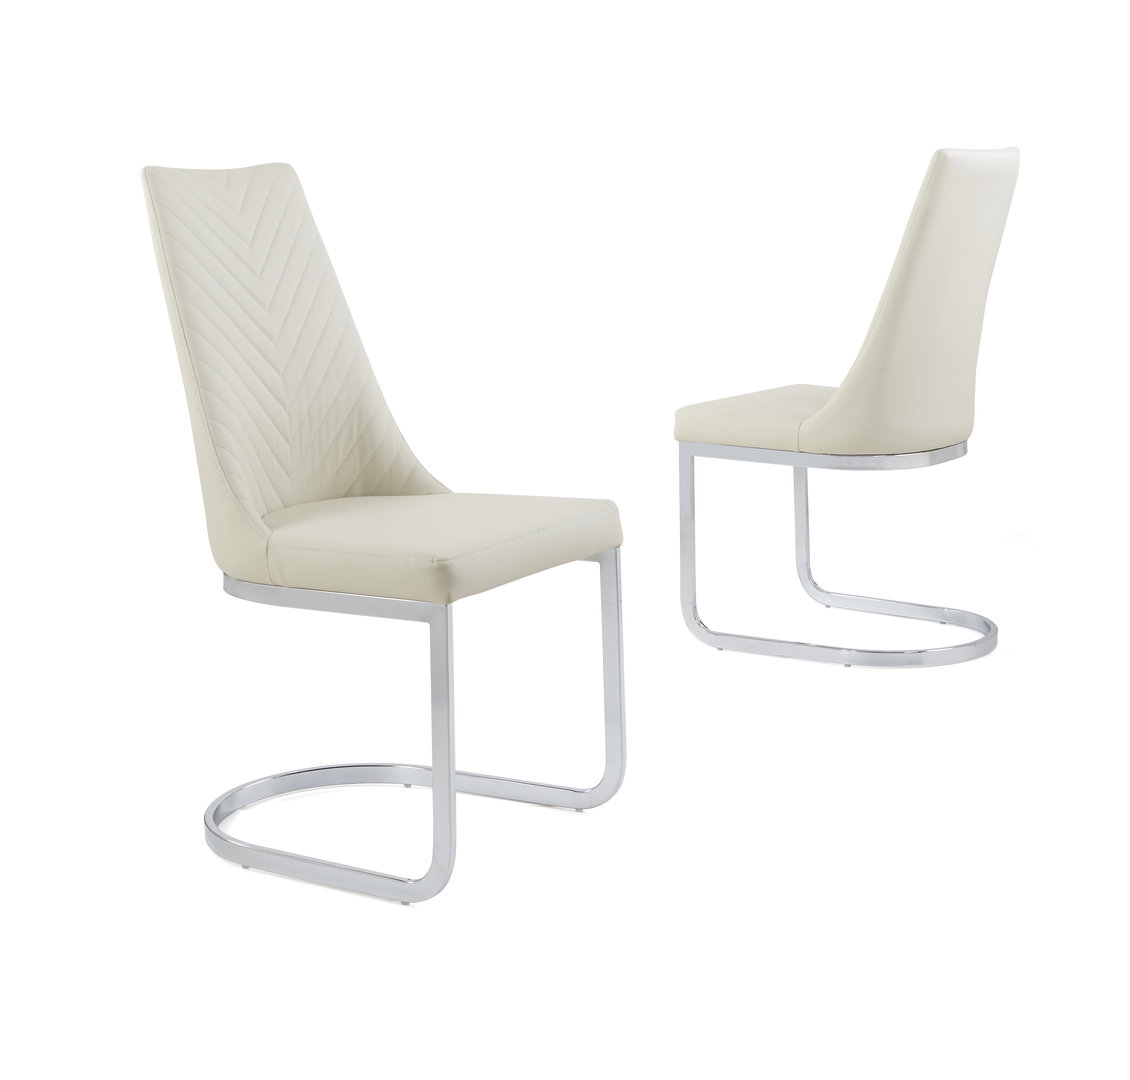 Cream Leather Dining Chairs Cream Faux Leather Dining Chair With Curved Leg Homegenies